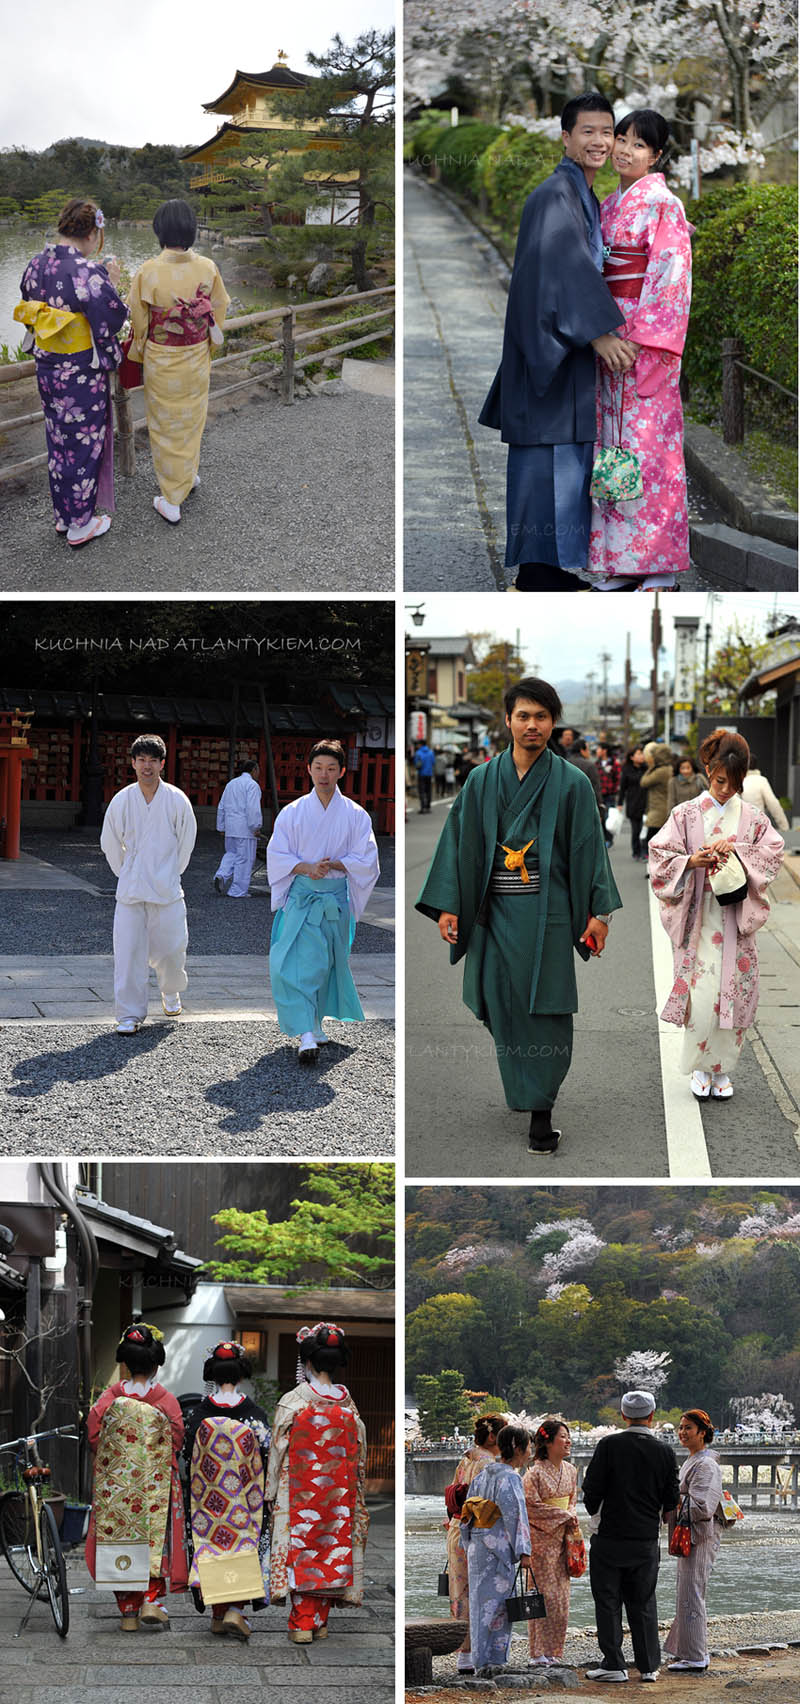 Scenes from the streets of Kyoto